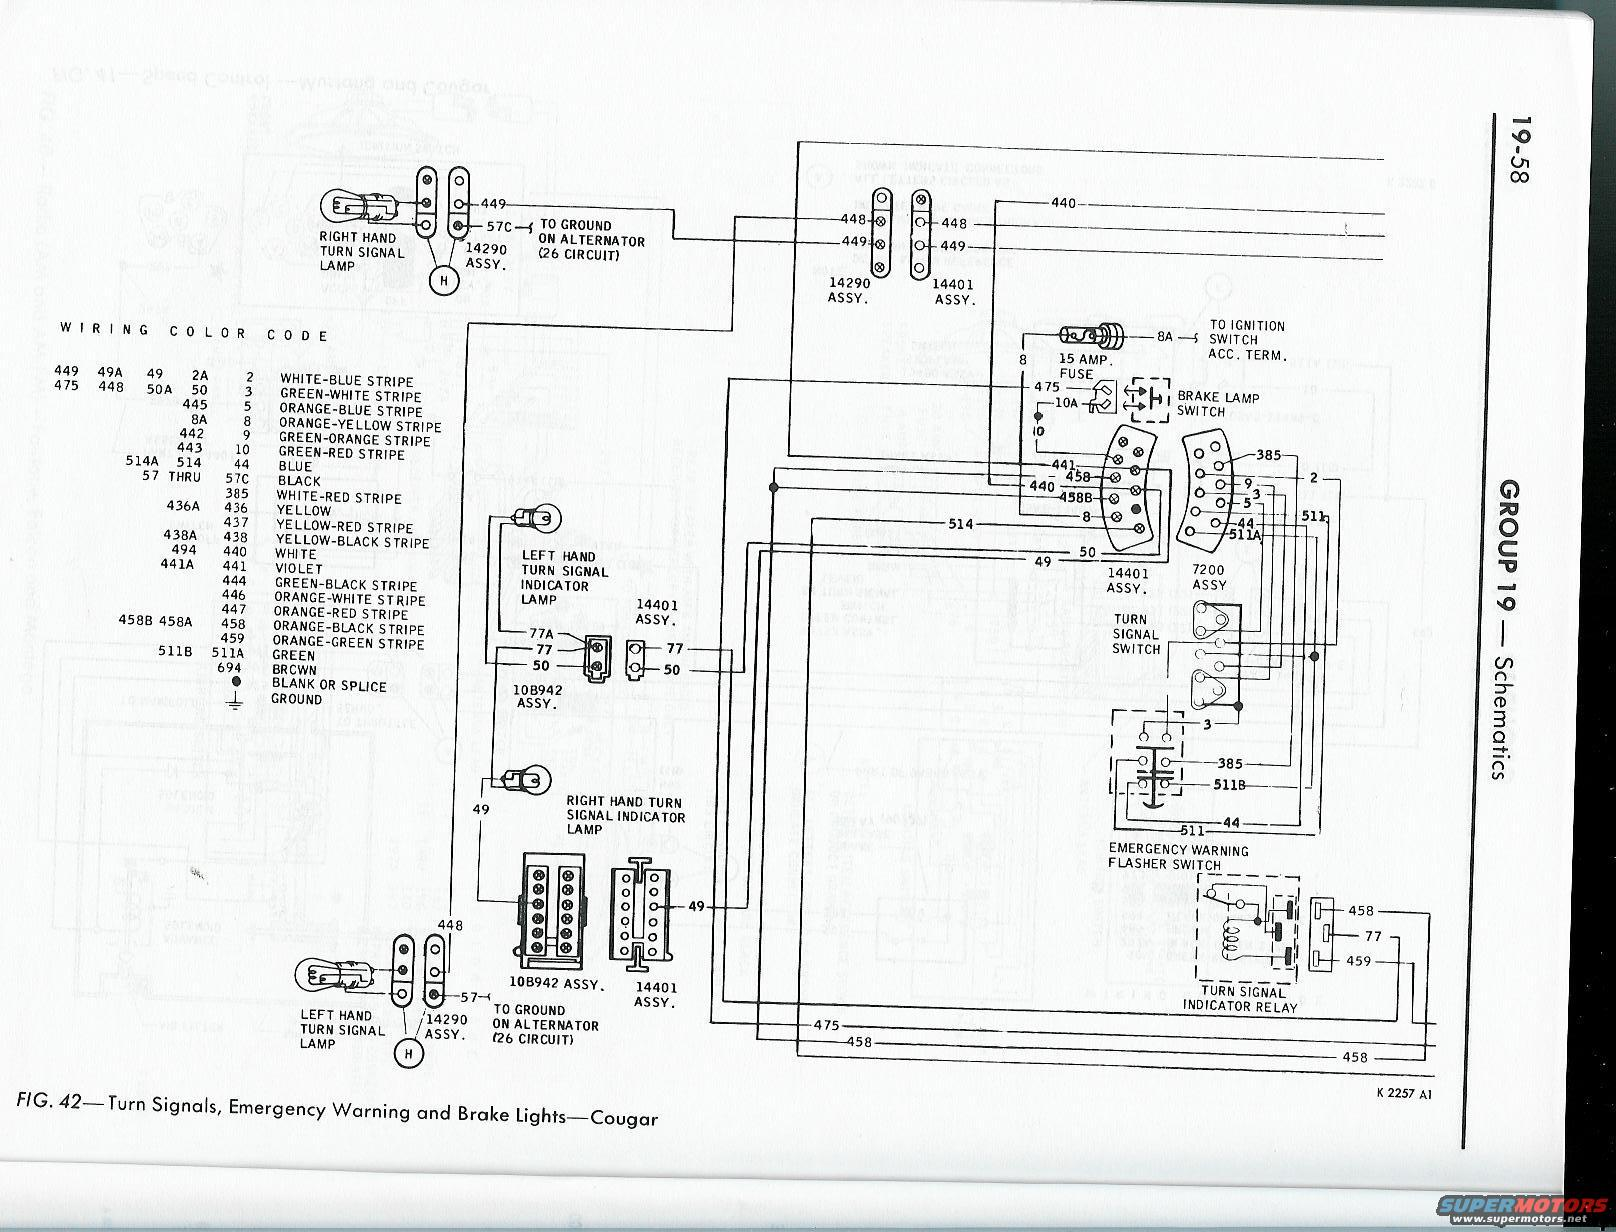 6820cougar20turn20signals201 wiring issues classic cougar community 67 cougar turn signal wiring diagram at gsmx.co